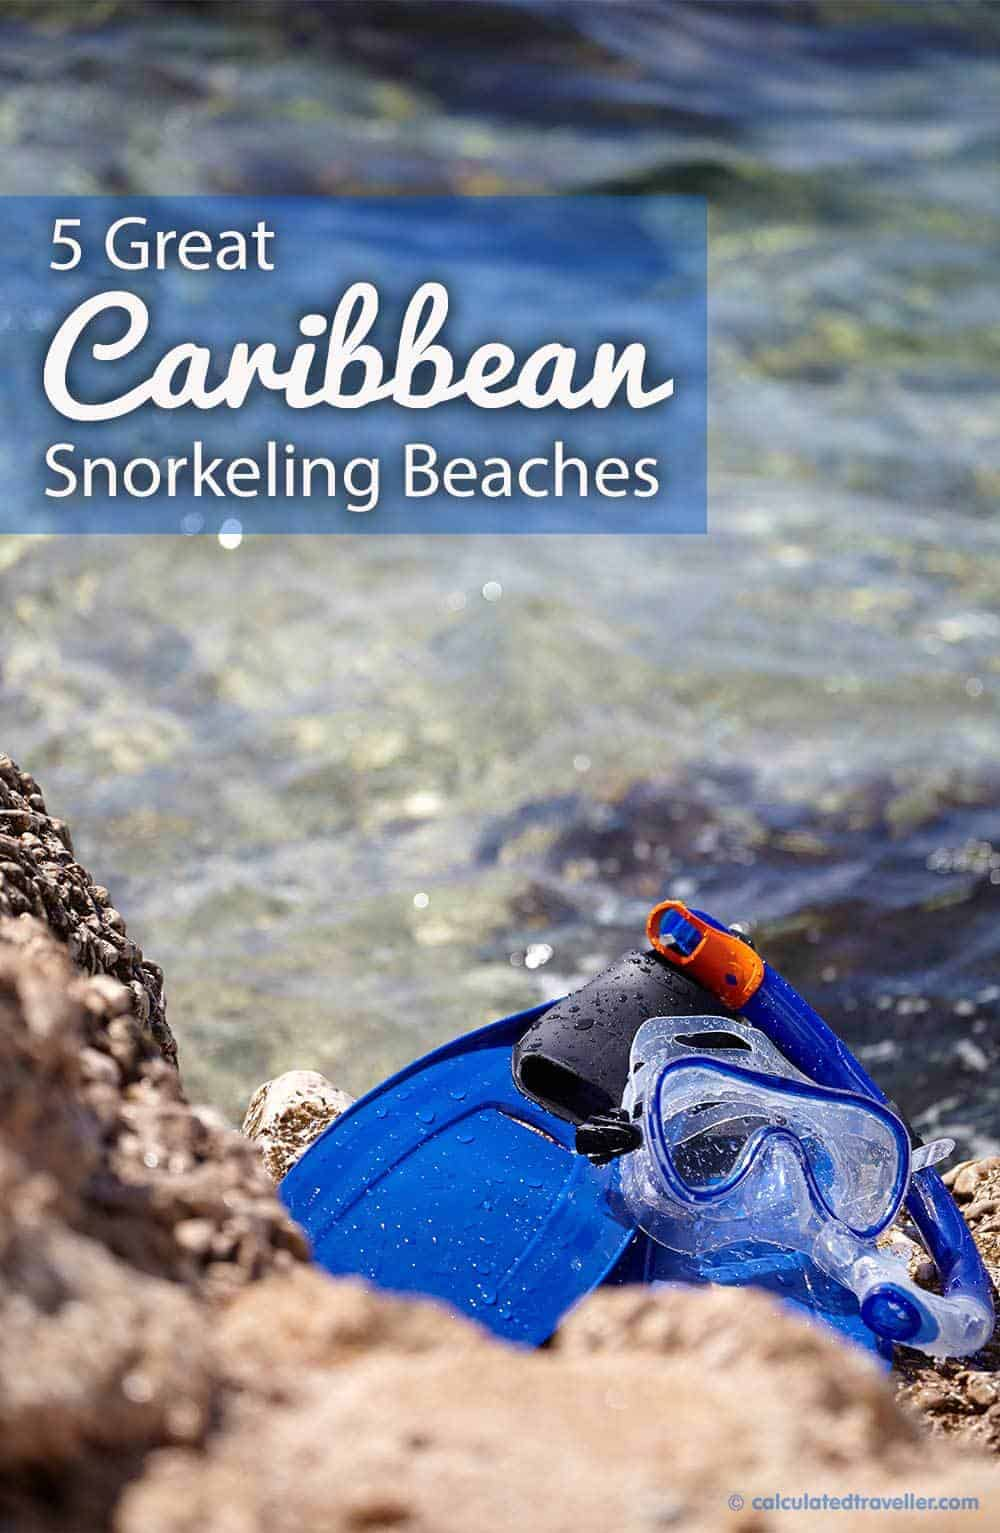 5 Great Caribbean Snorkeling Beaches | Calculated Traveller